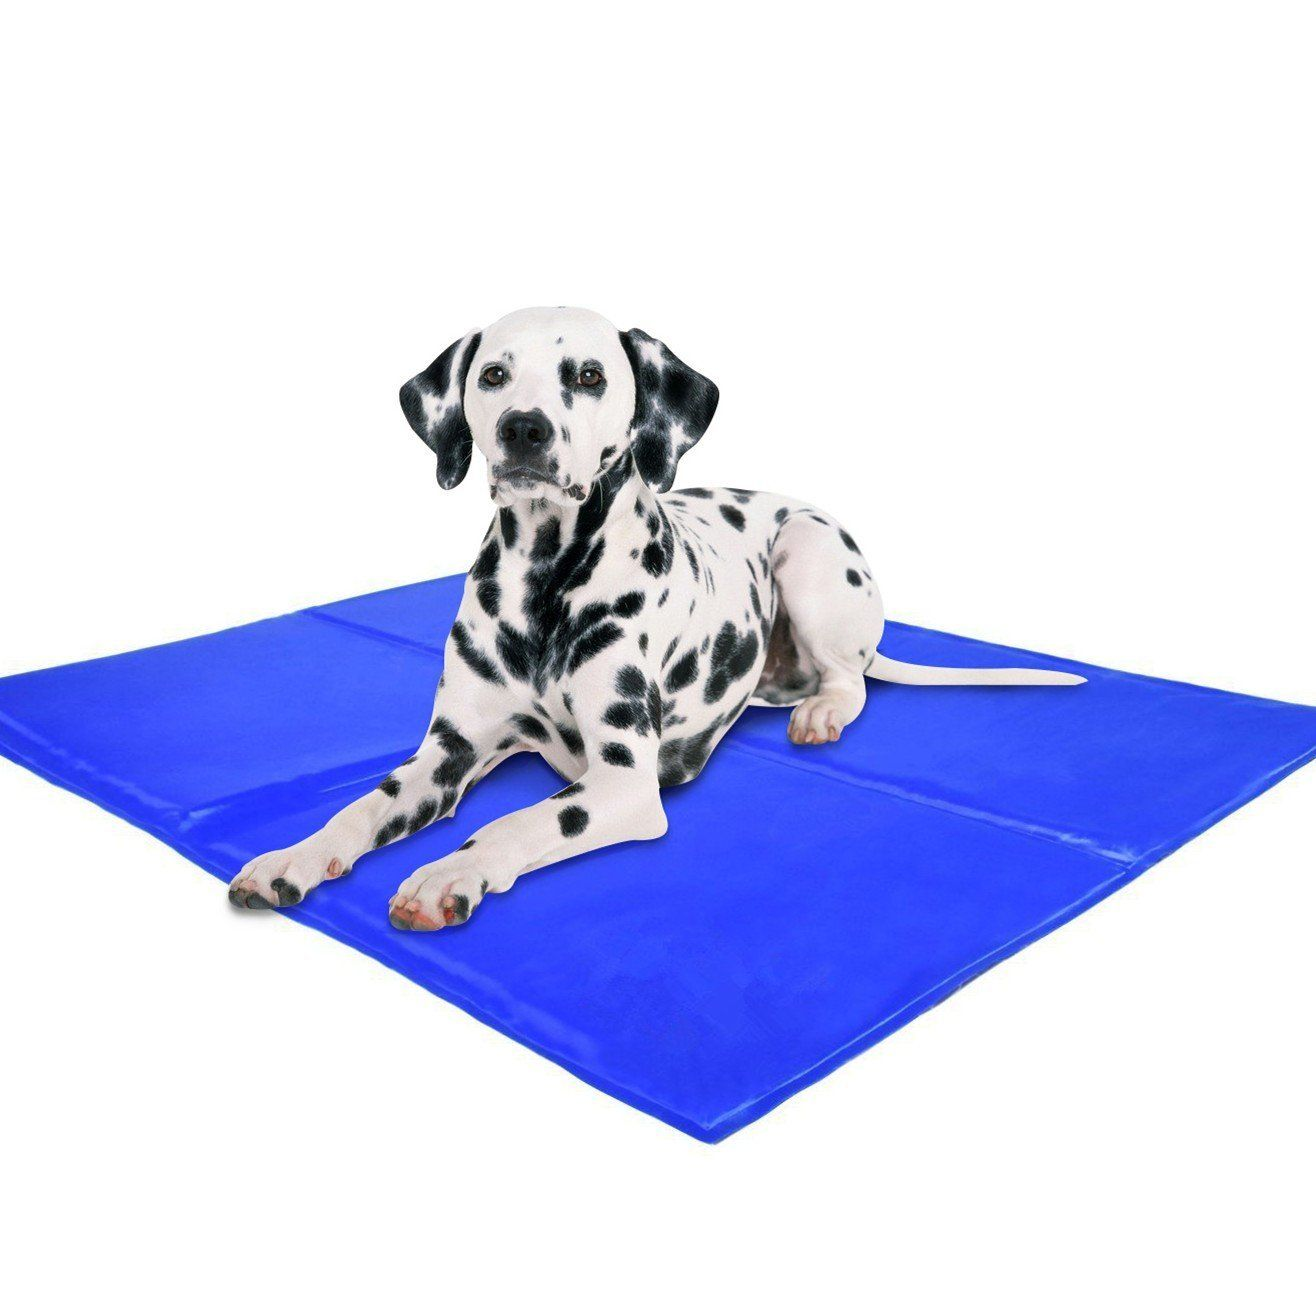 Ihoven Pet Dog Self Cooling Gel Mat Cat Chilly Ice Cooler Pad Bed Dogs Gelmat Pets Cold Pillow Beds Cats Coolmat 25x19 7inch Dog Pet Beds Dog Pillow Dog Mat